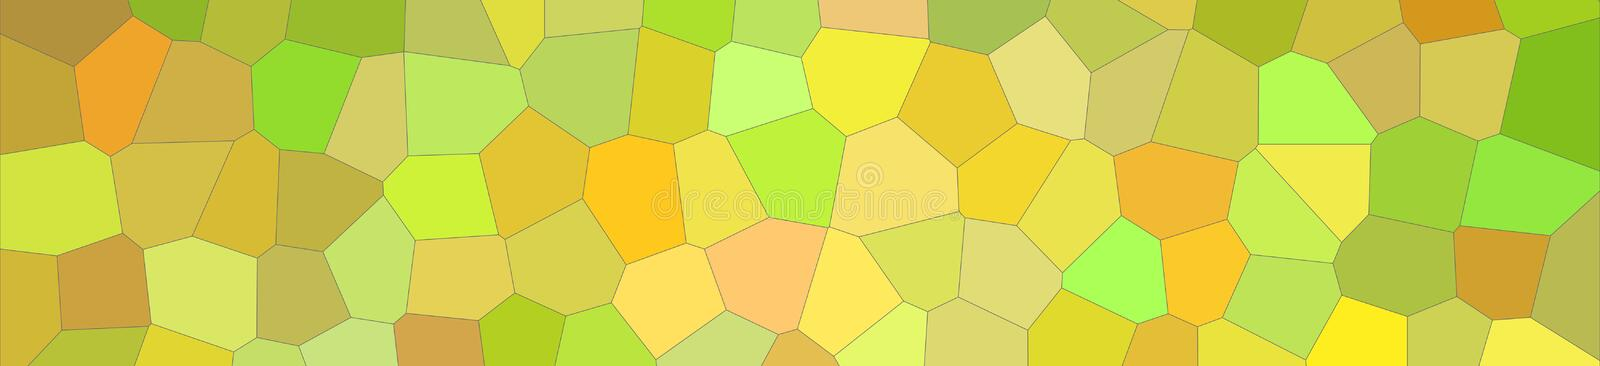 Illustration of yellow bright Middle size hexagon banner background. Illustration of yellow bright Middle size hexagon banner background vector illustration